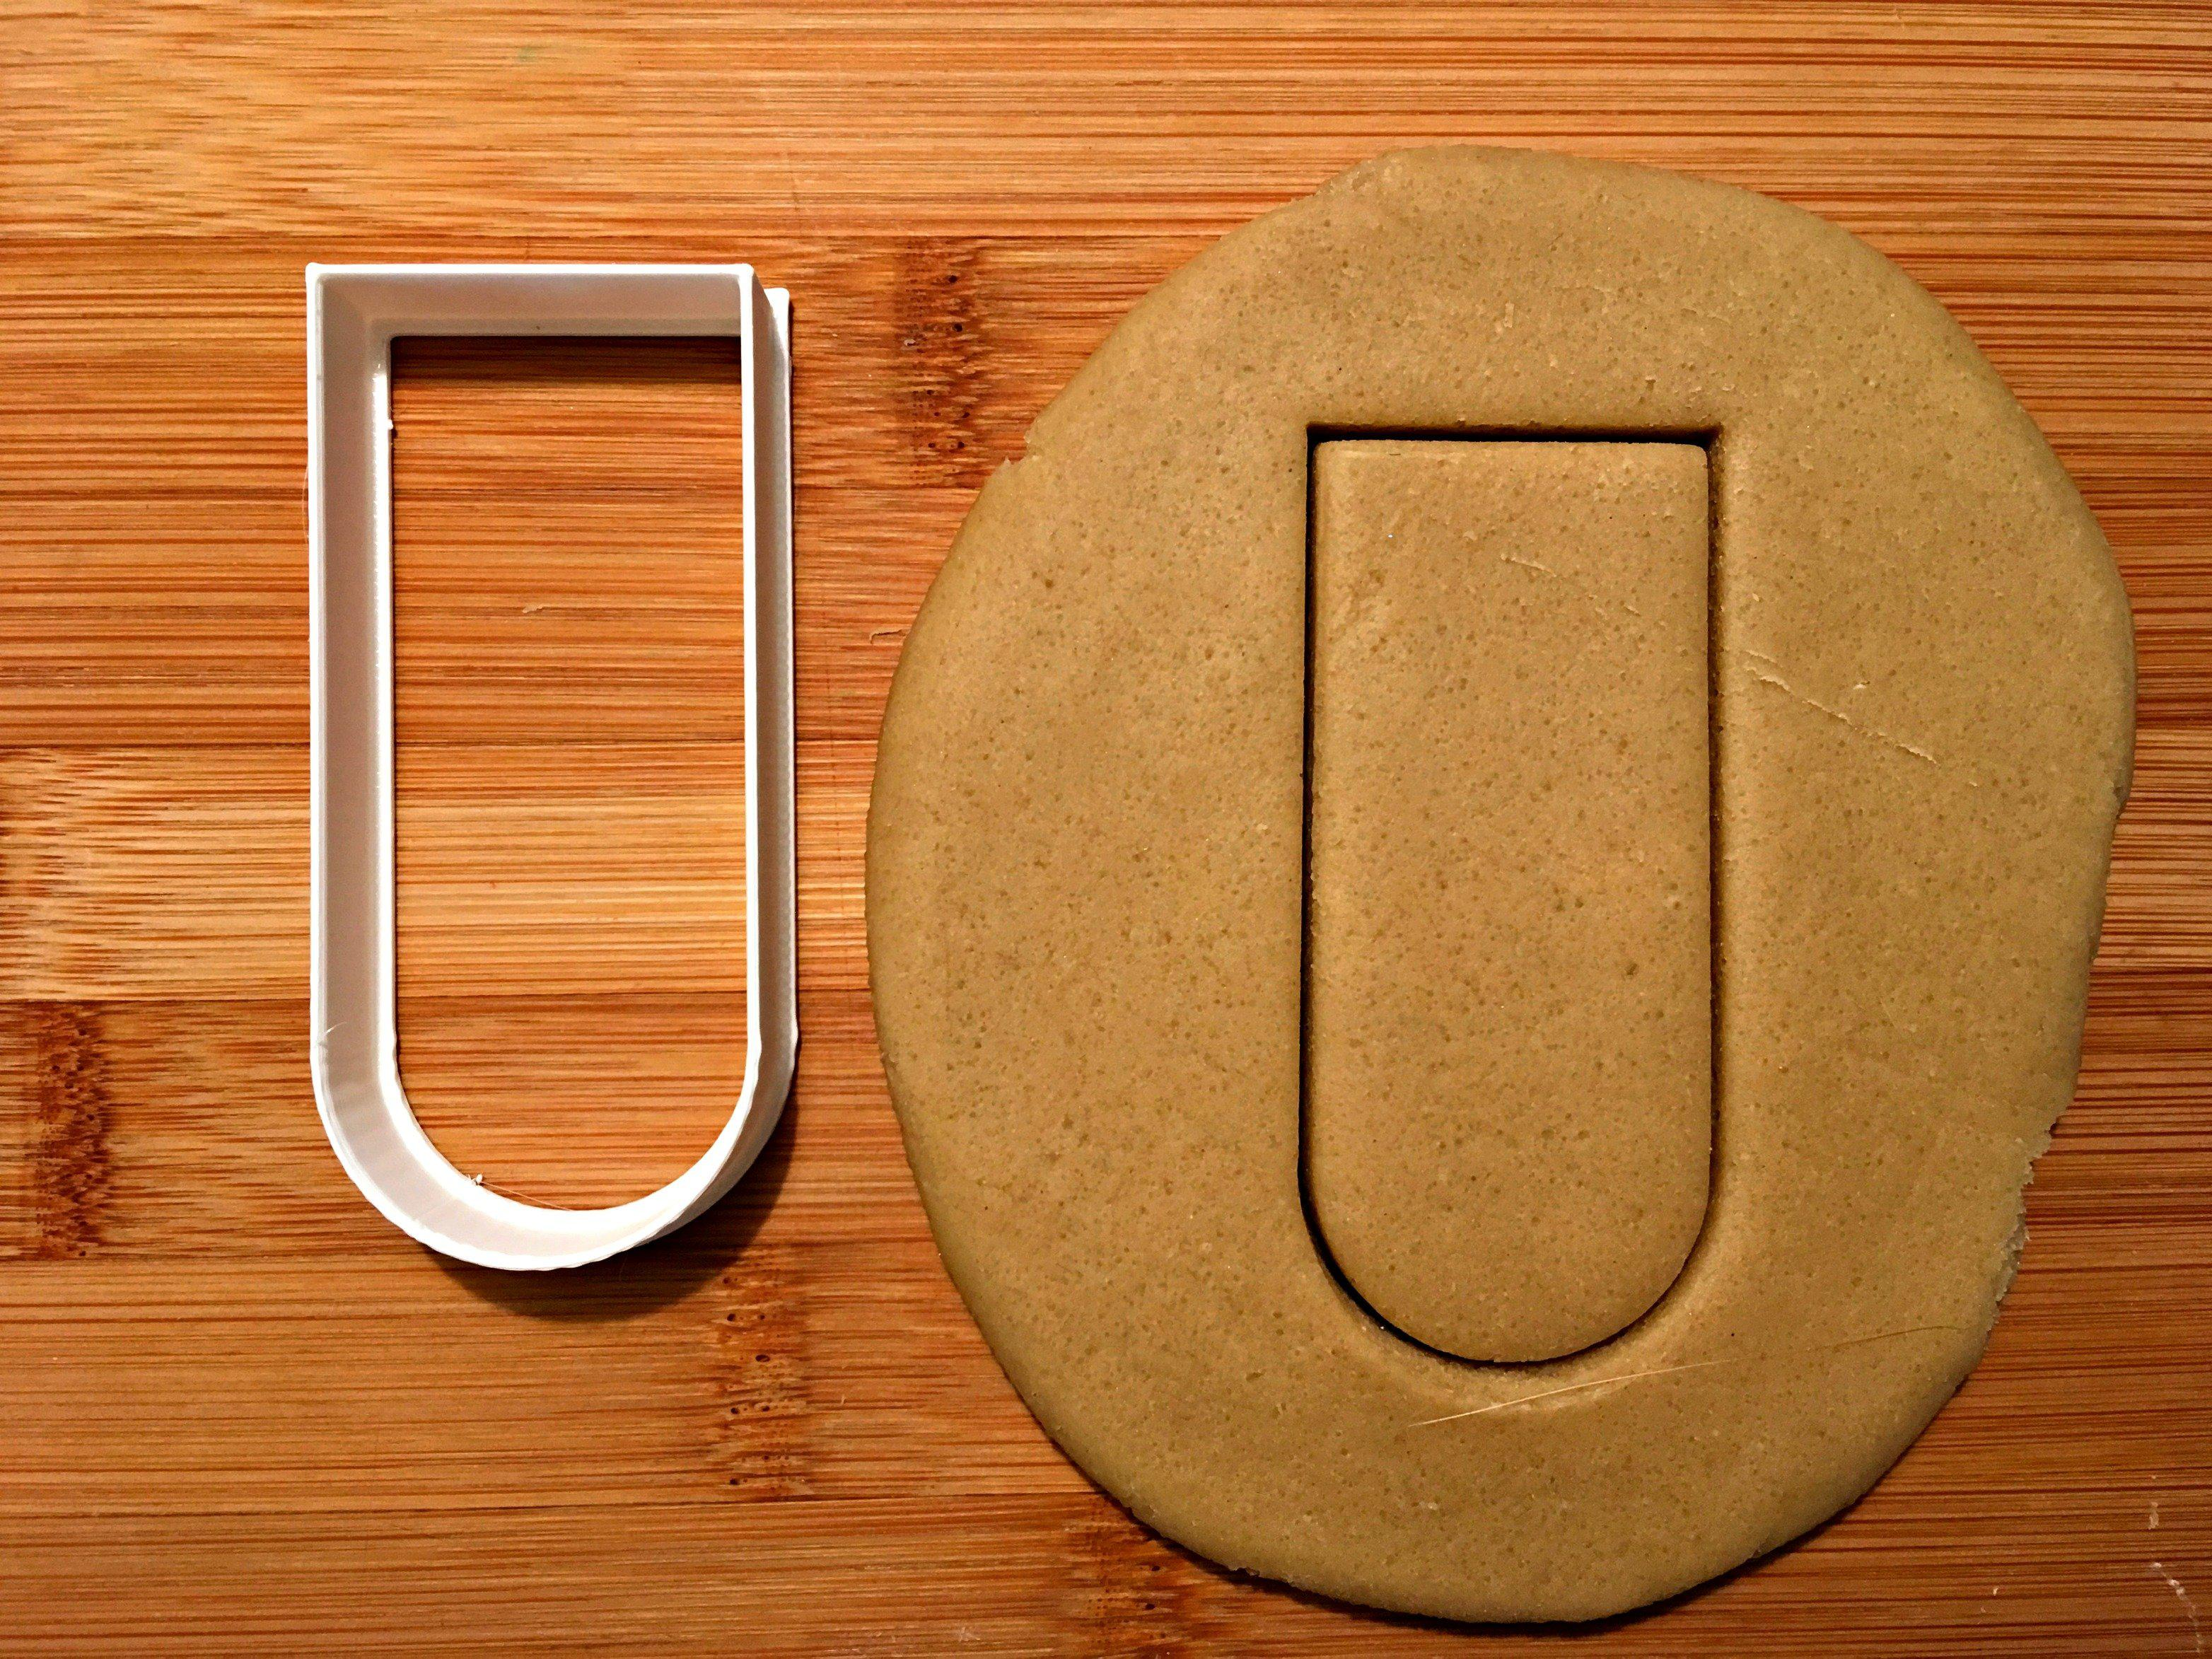 Test Tube Cookie Cutter